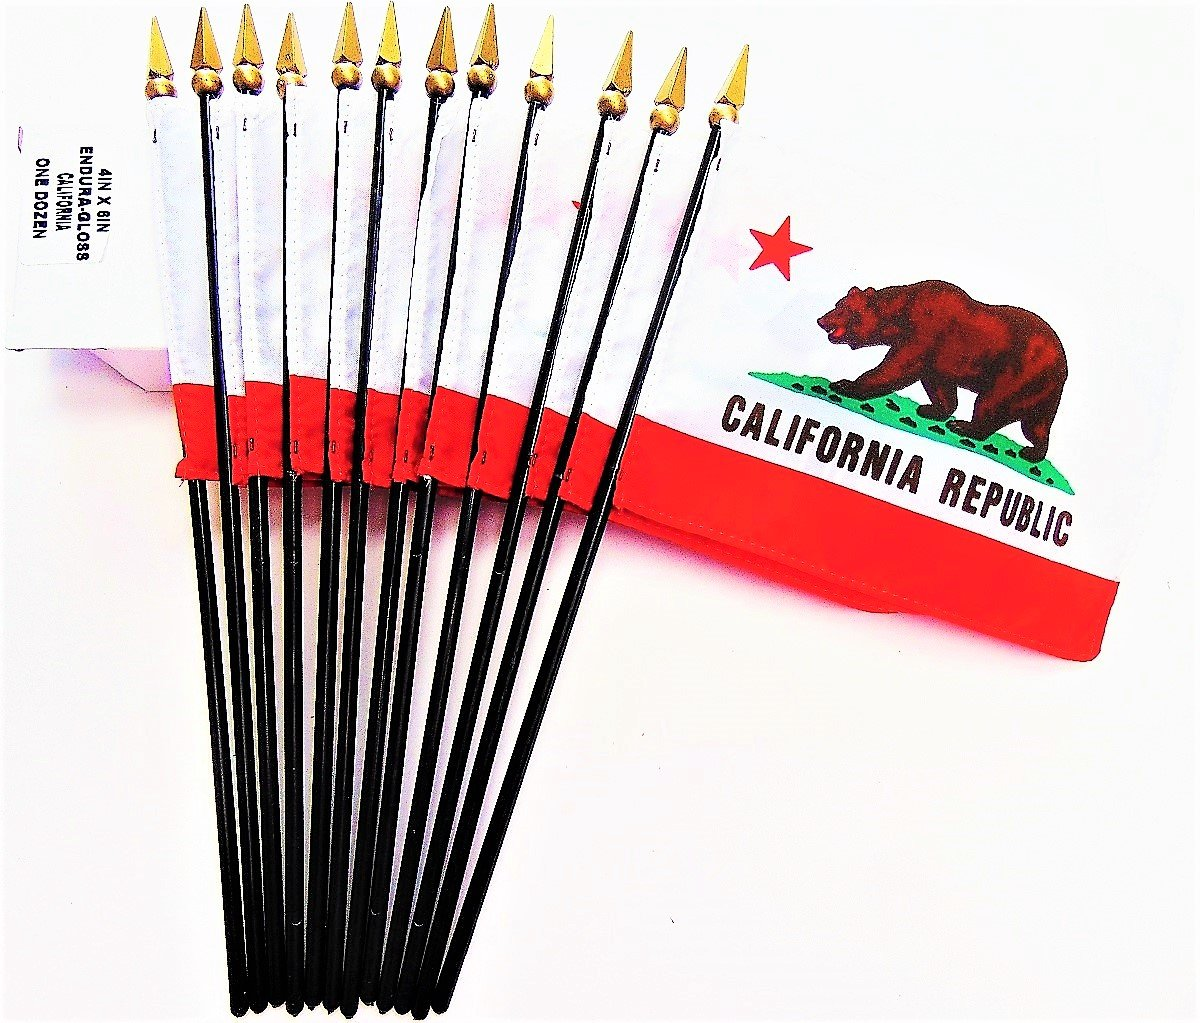 MADE IN USA!! Box of 12 California 4''x6'' Miniature Desk & Table Flags; 12 American Made Small Mini California State Flags in a Custom Made Cardboard Box Specifically Made for These Flags